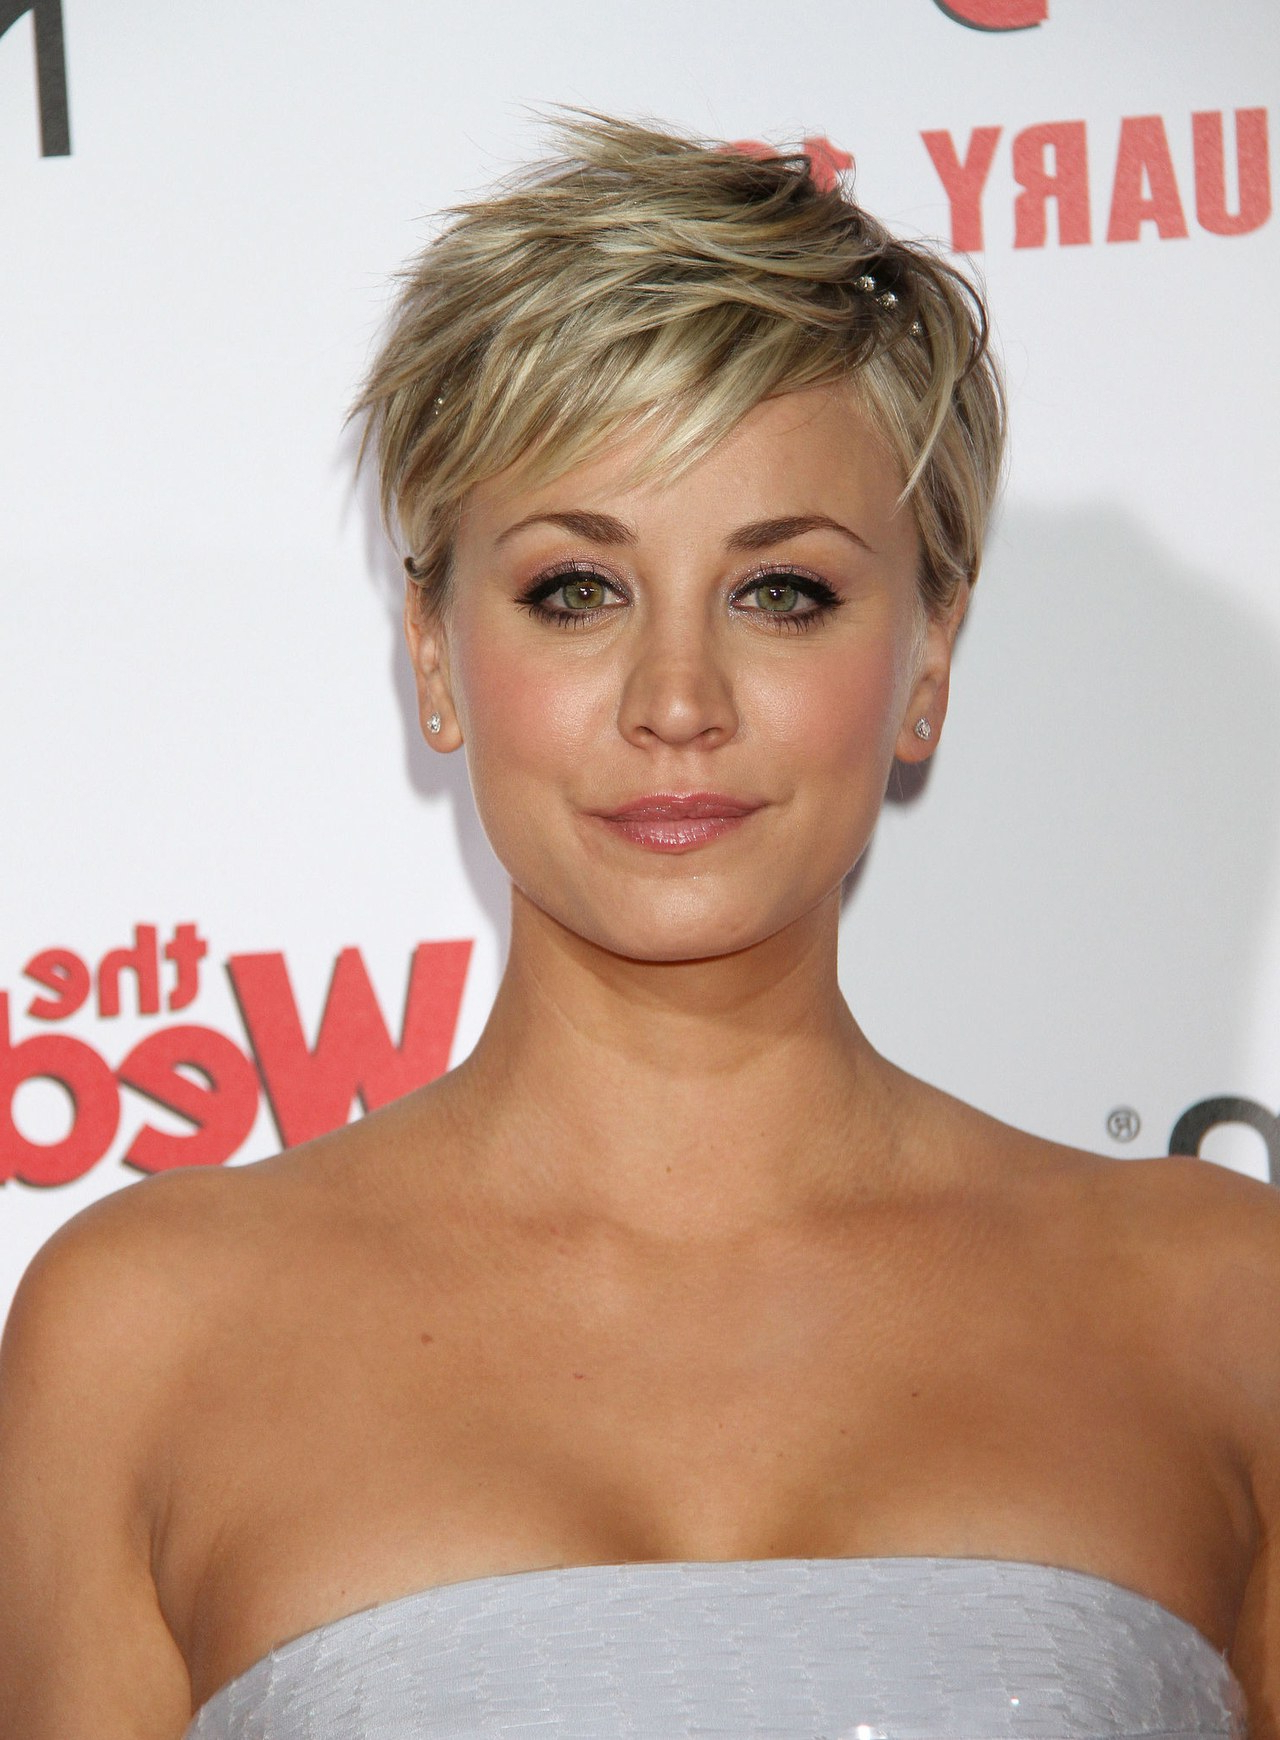 Kaley Cuoco Sweeting Shows A Creative Way To Wear A Headband In With Short Hairstyles With Headbands (View 13 of 25)